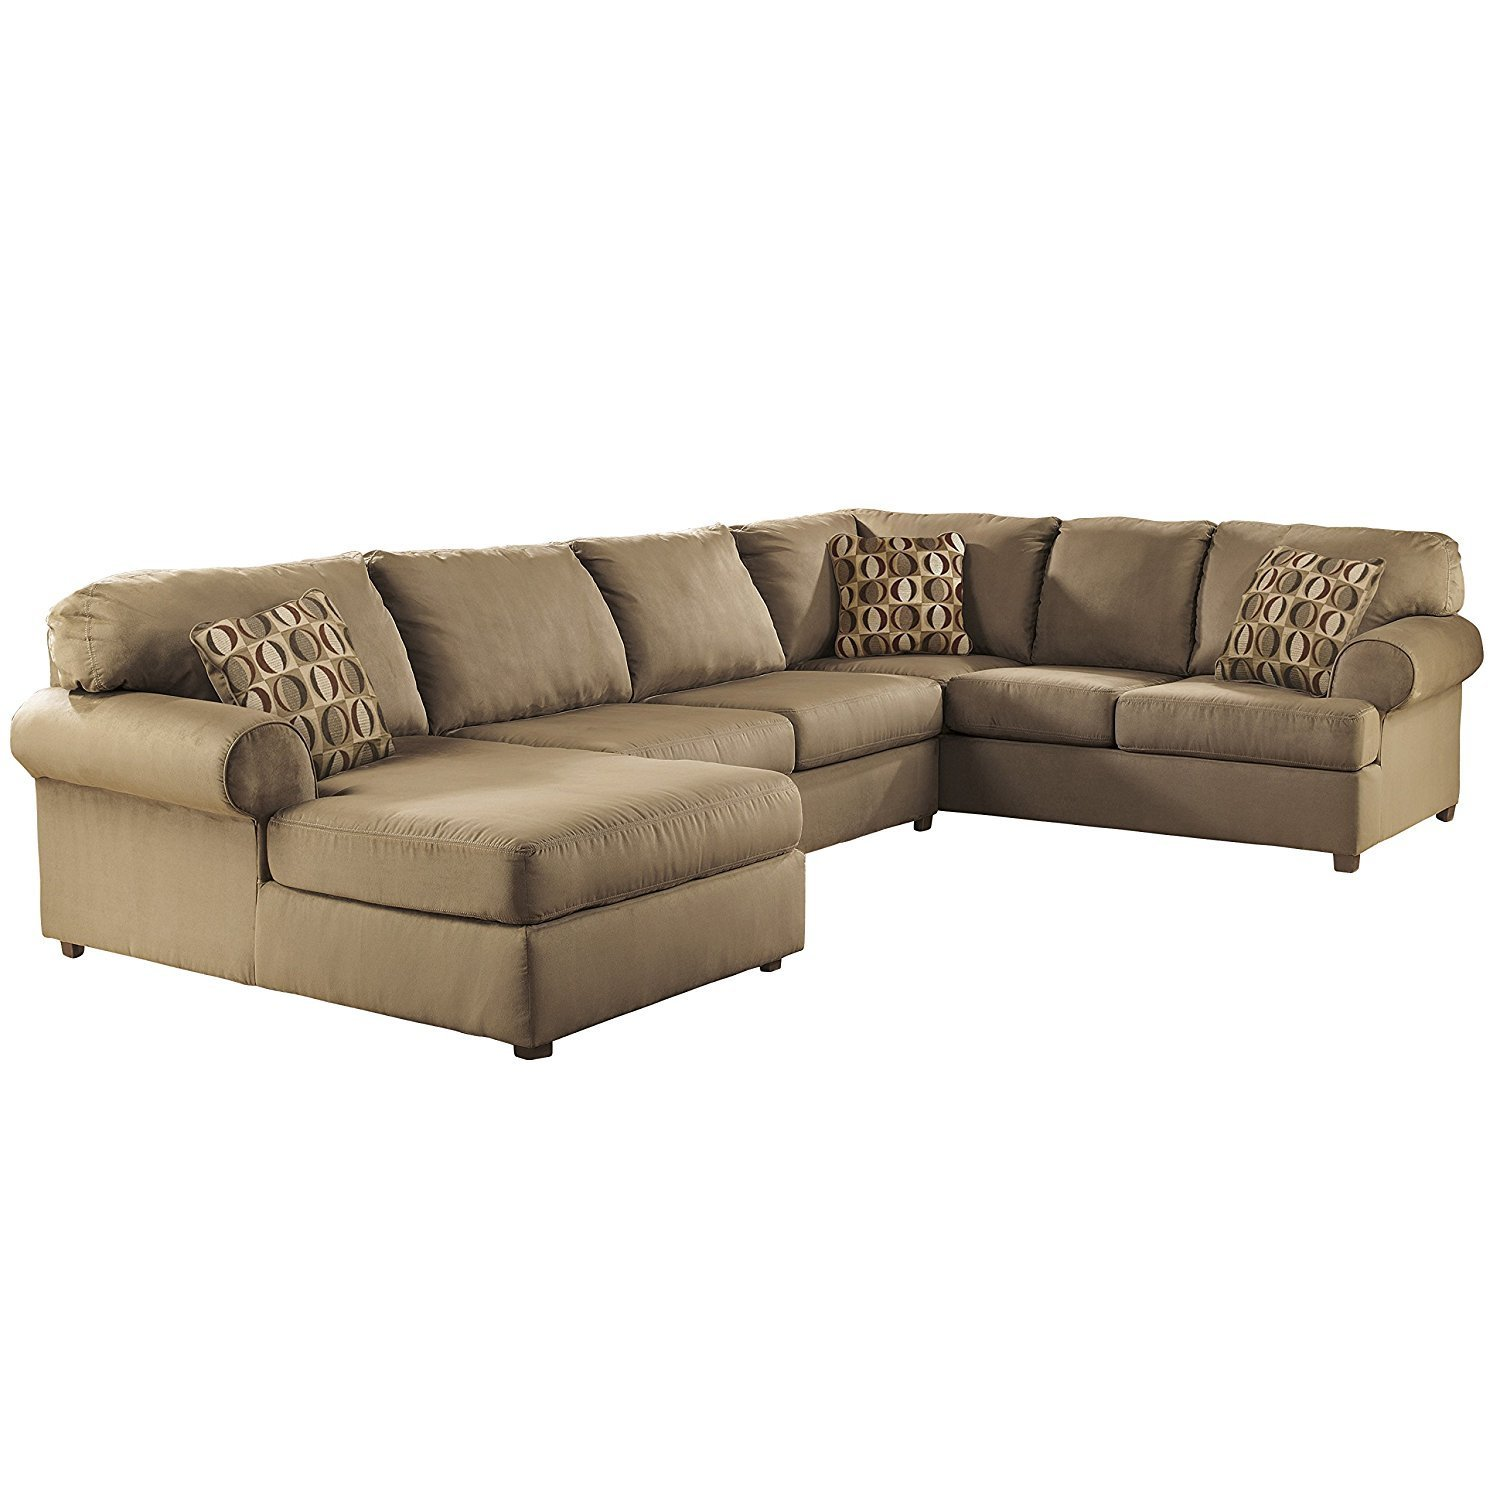 U Shaped Sectional Couch Home Furniture Design